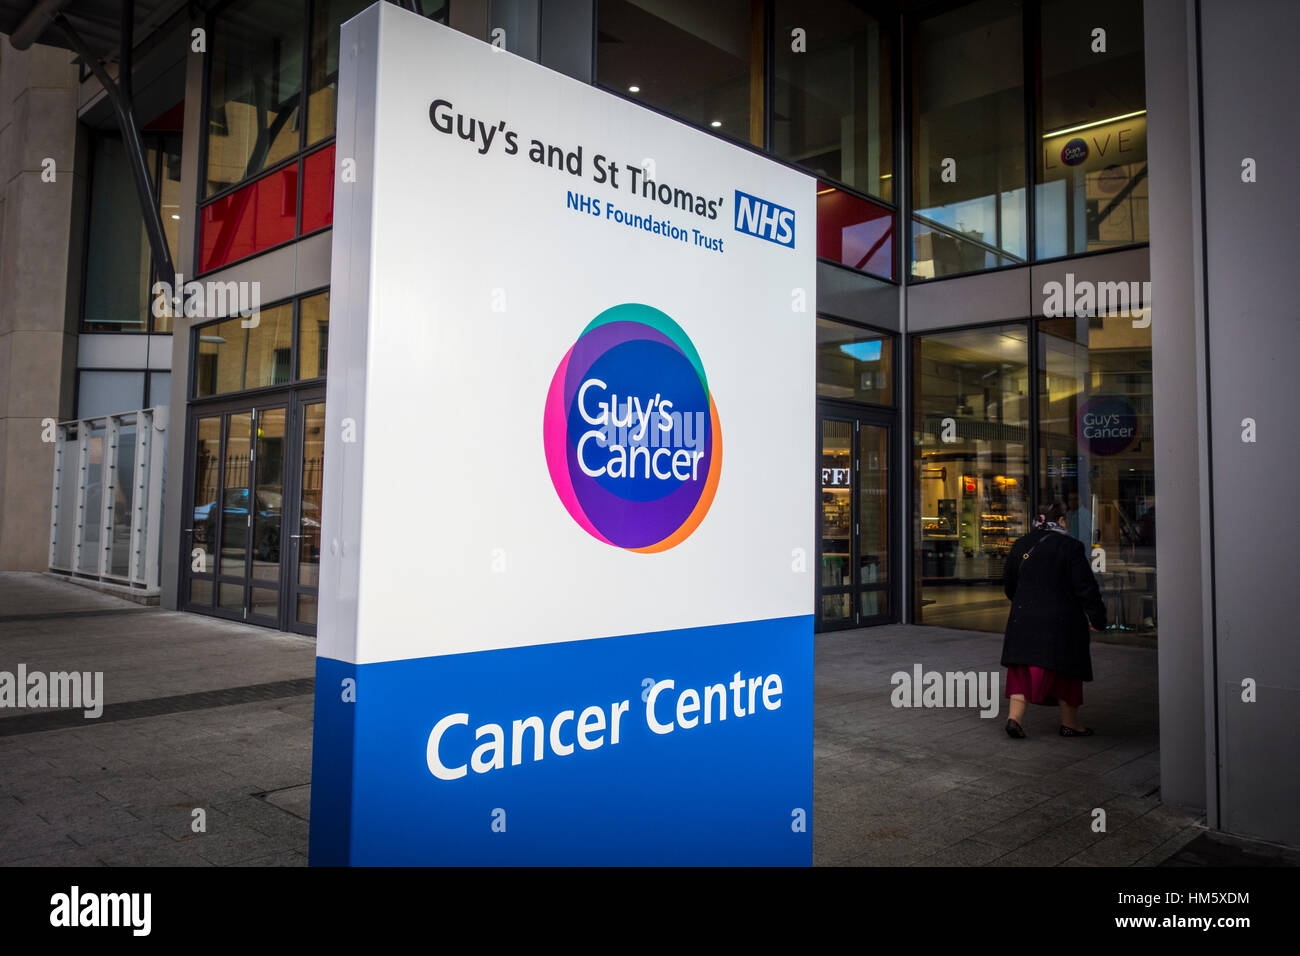 Cancer Centre sign outside the building entrance, Guy's and St Thomas' Hospital, London, UK - Stock Image